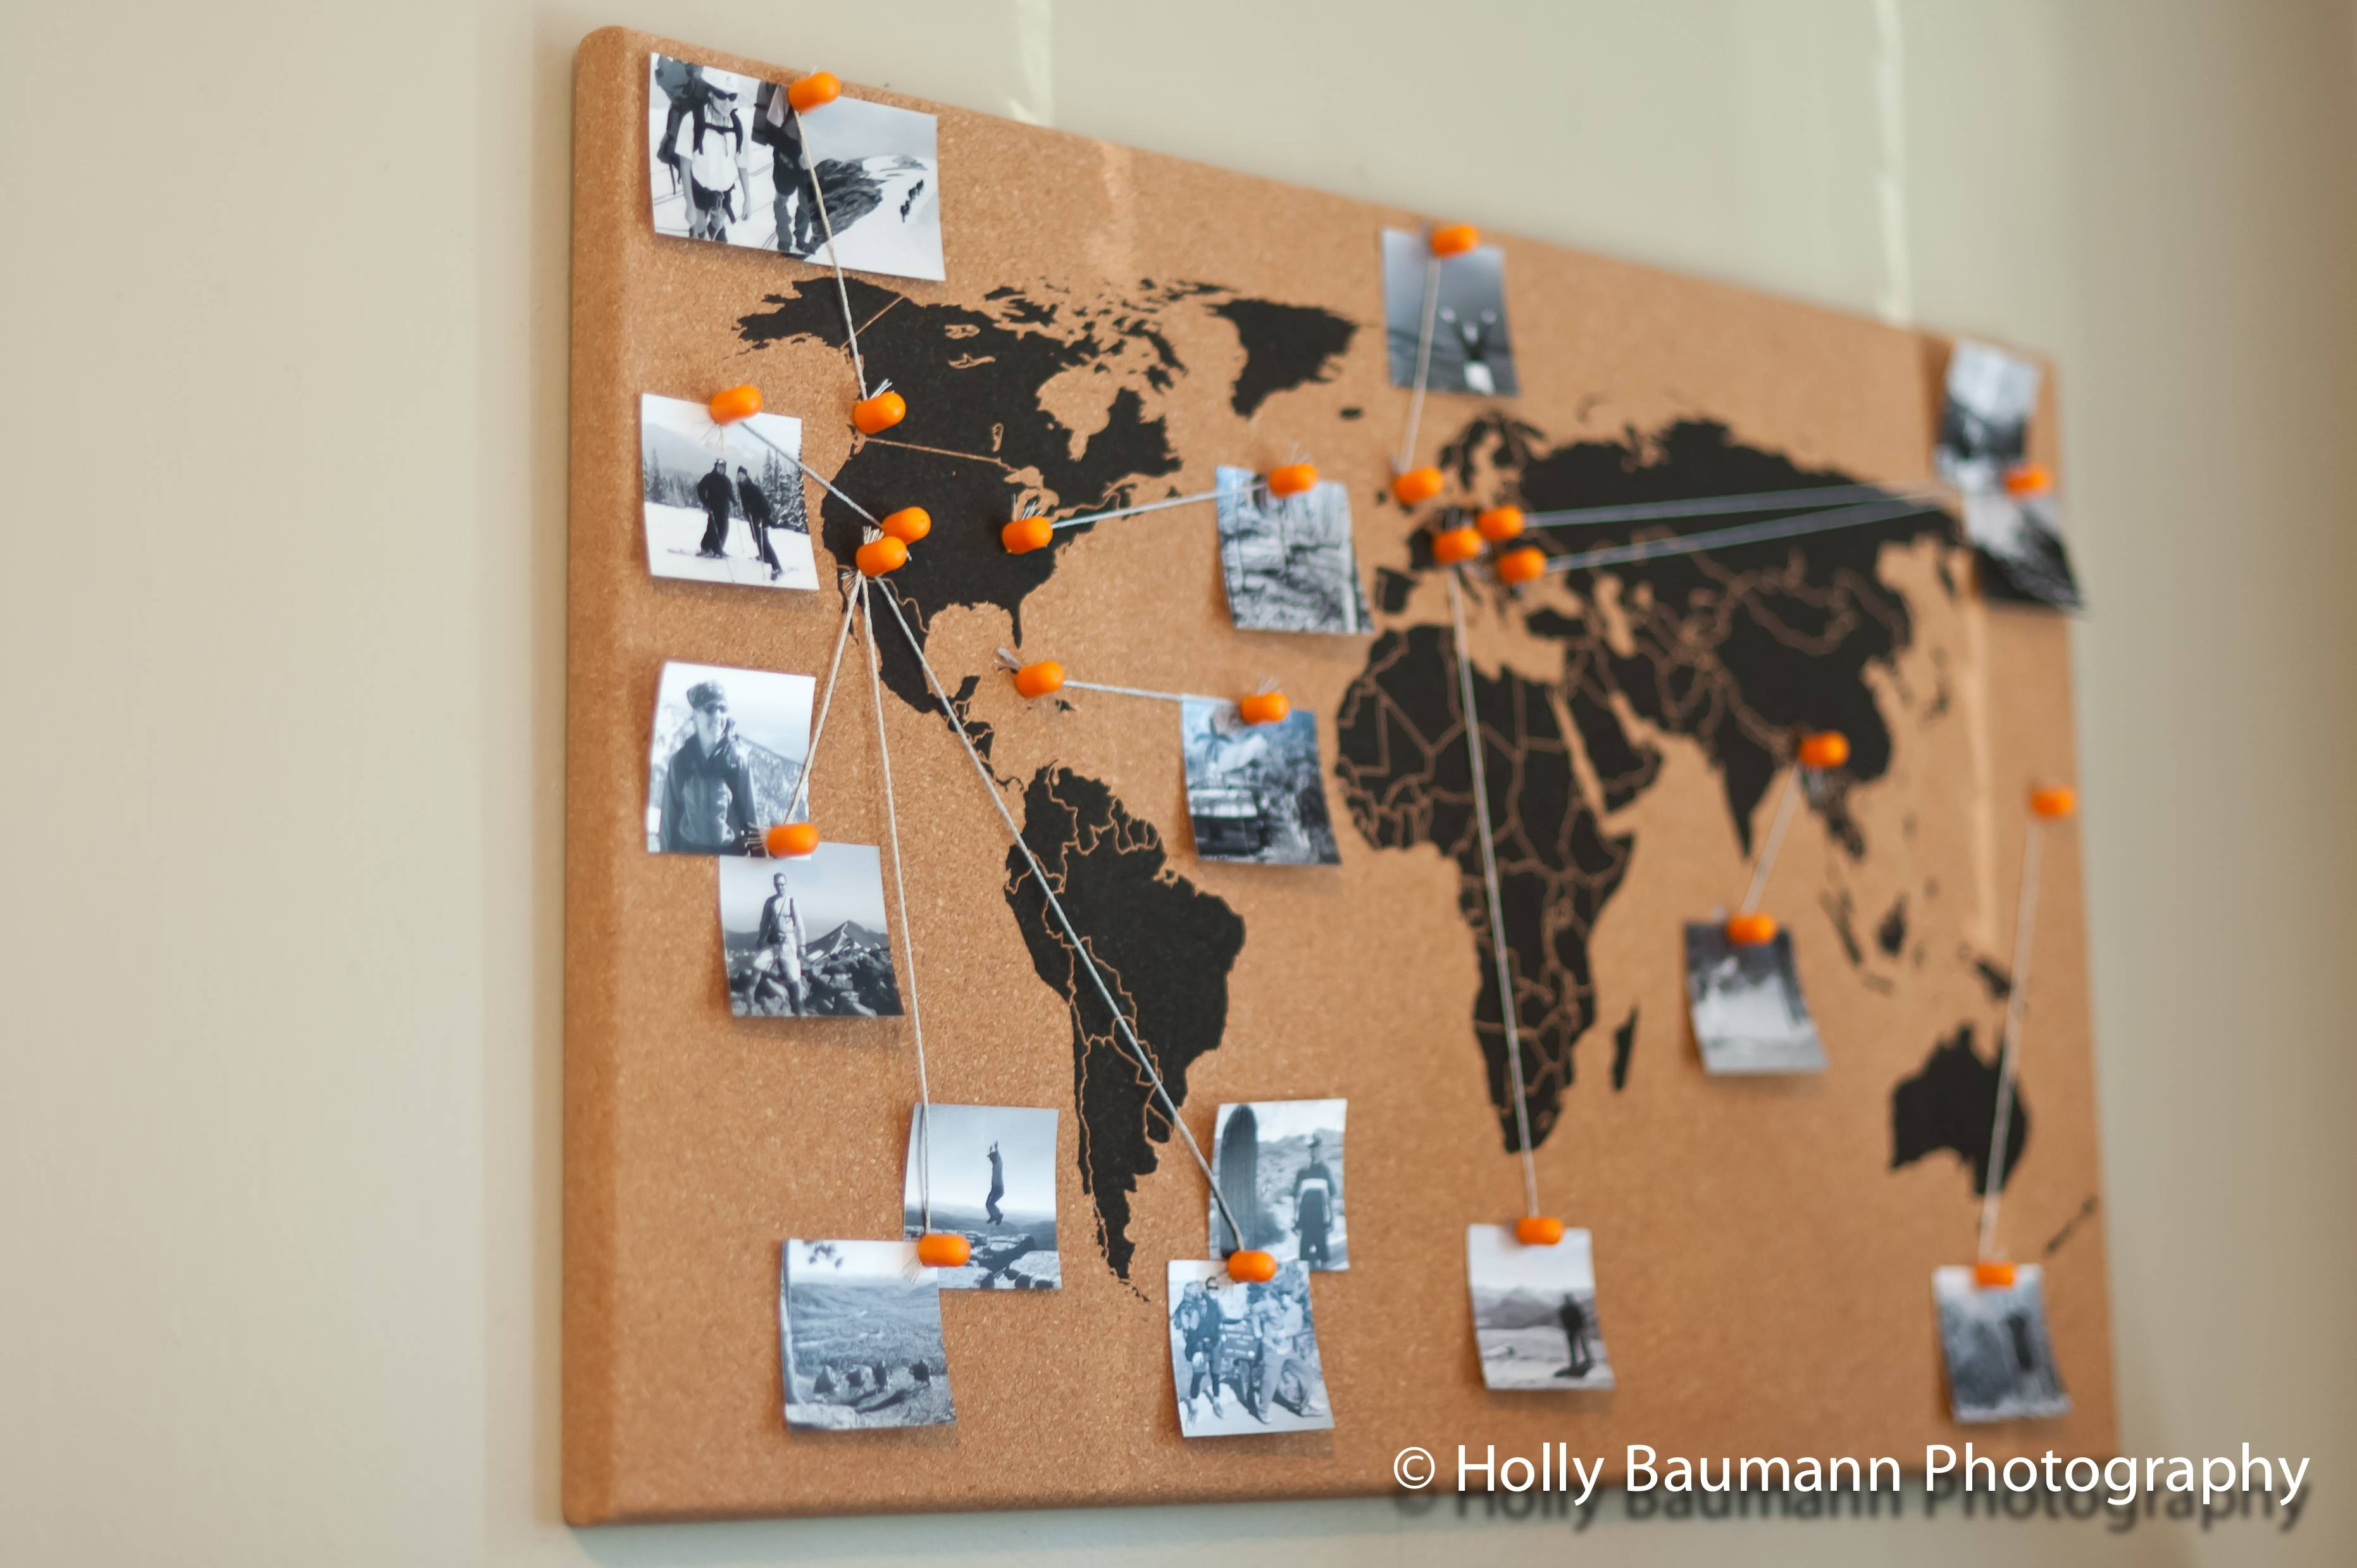 Maps Update #37252478 Travel Wall Maps u2013 Travel Wall Map (+75 Intended & 20 Collection of Travel Map Wall Art